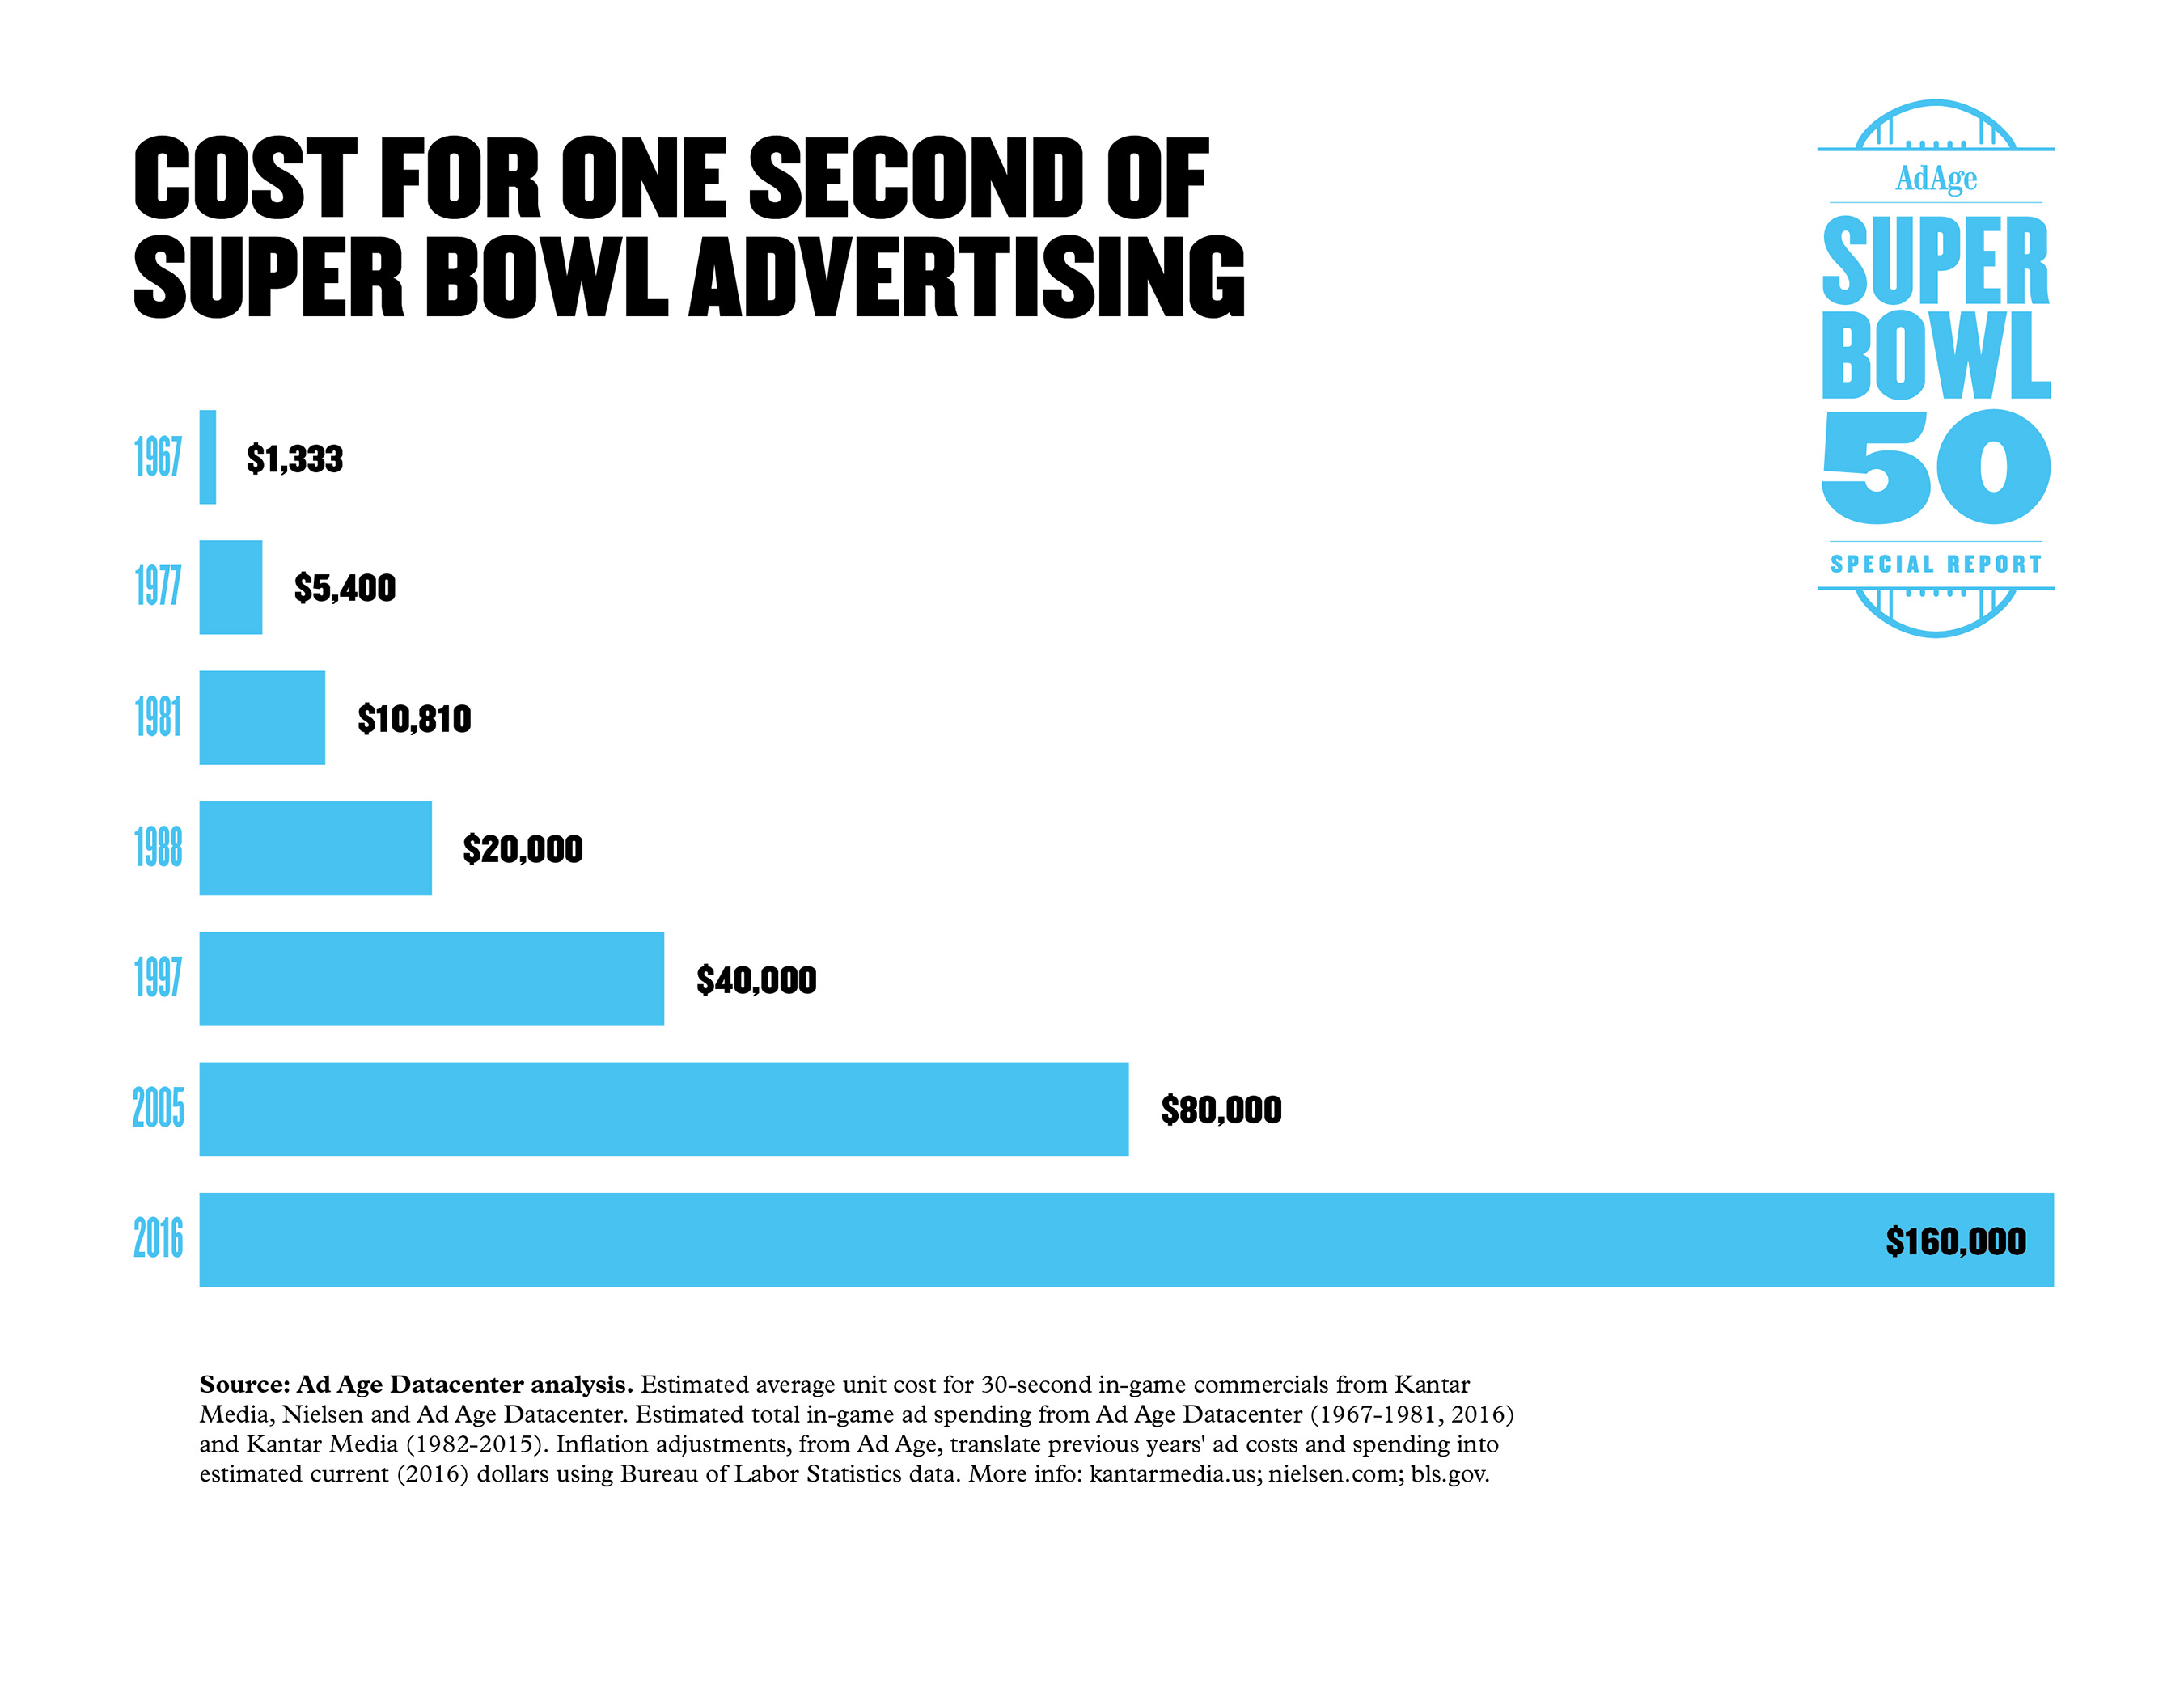 Graphic: Cost for One Second of Super Bowl Advertising